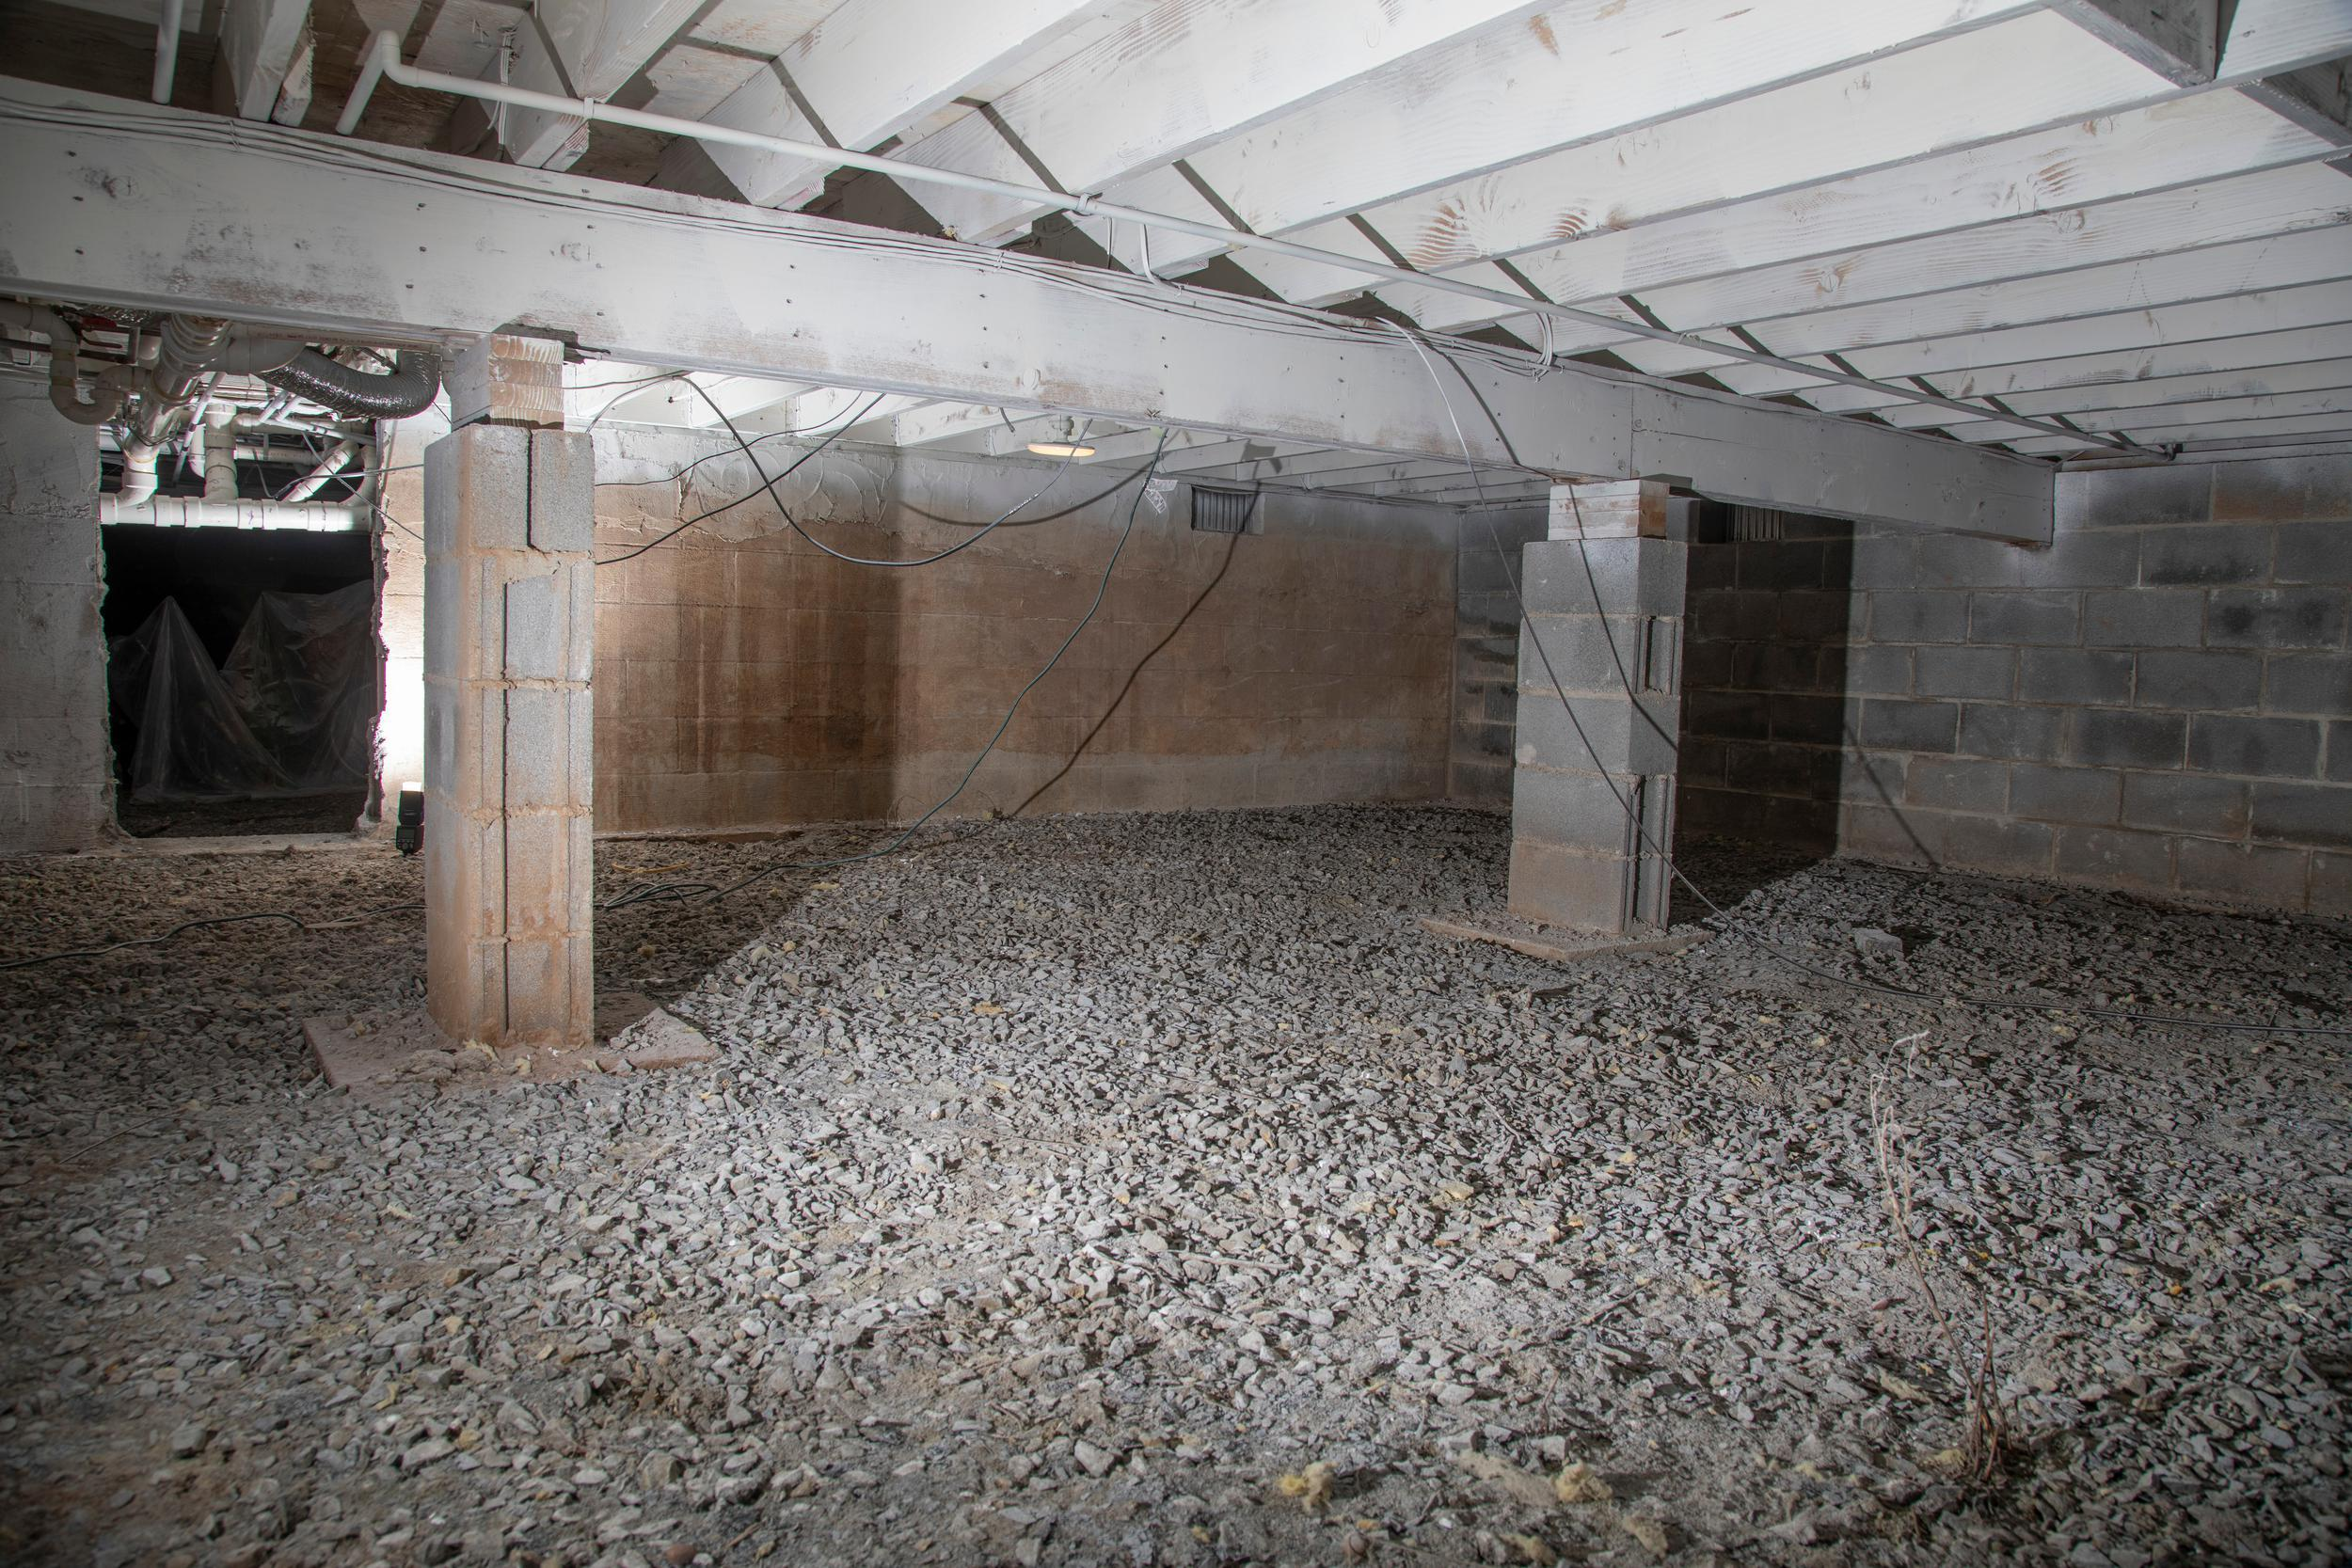 An image of a basement with gravel and rocks and a grey concrete ceiling.